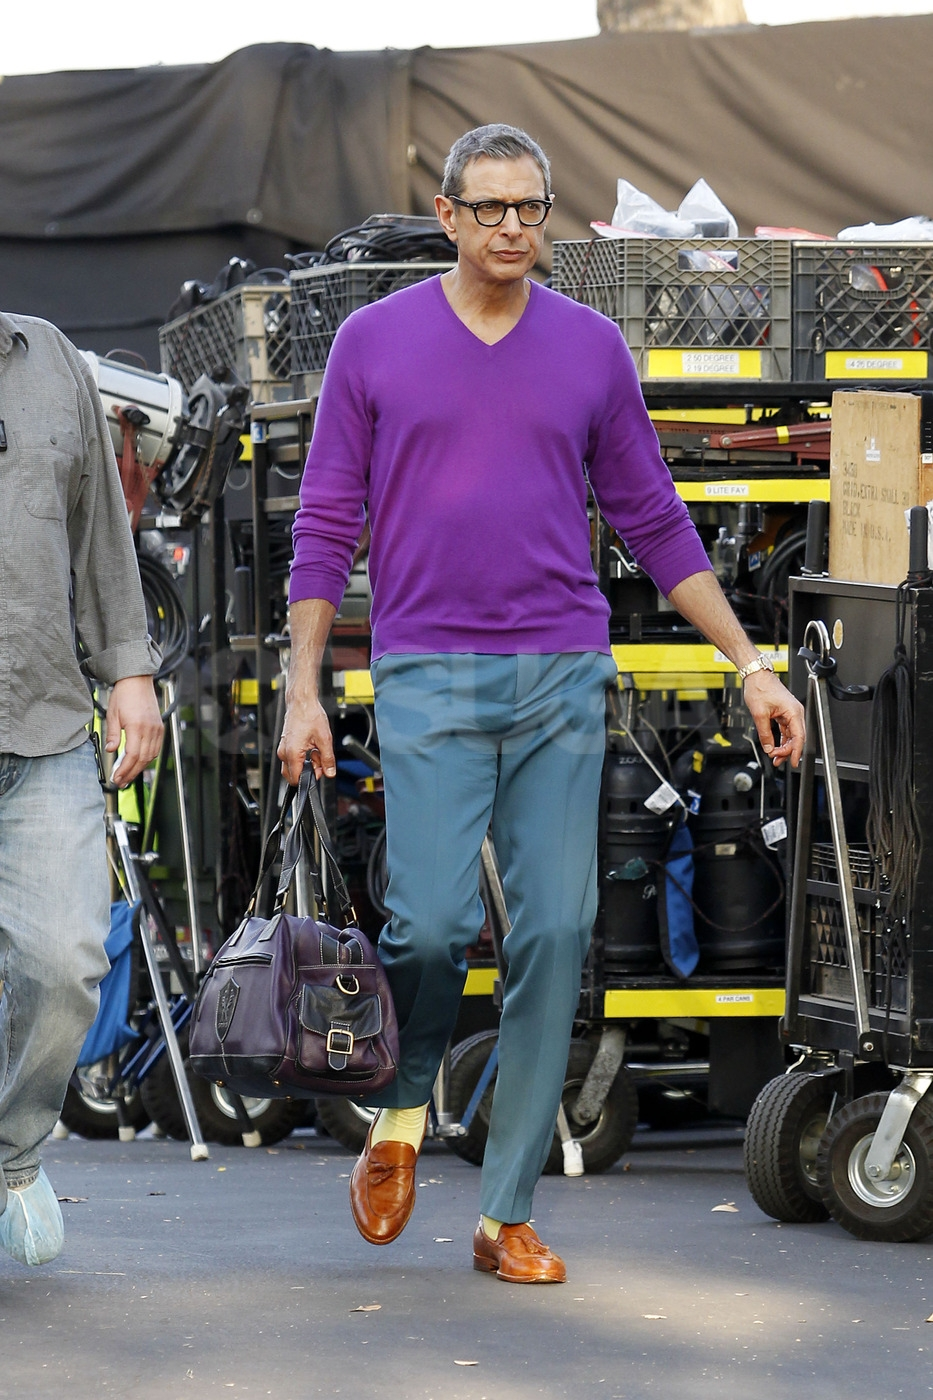 Jeff Goldblum made his debut as one of Rachel Berry's dads on the Glee set.